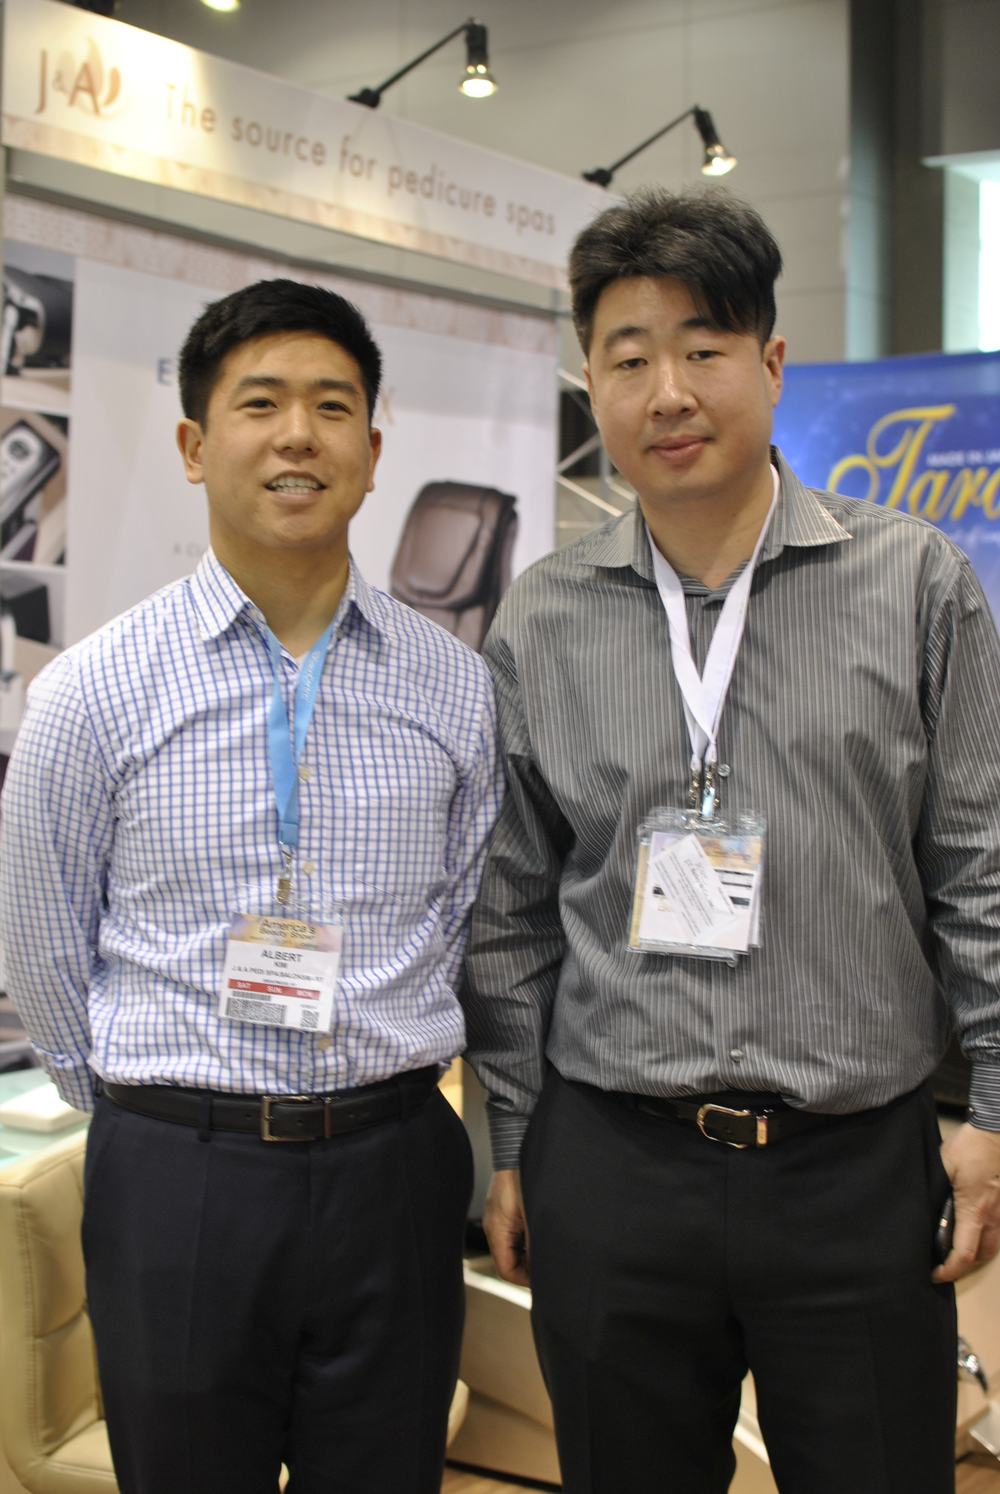 <p>J&amp;A&rsquo;s Albert Kim and Mike Ahn showed off the company&rsquo;s new adjustable foot rest.</p>